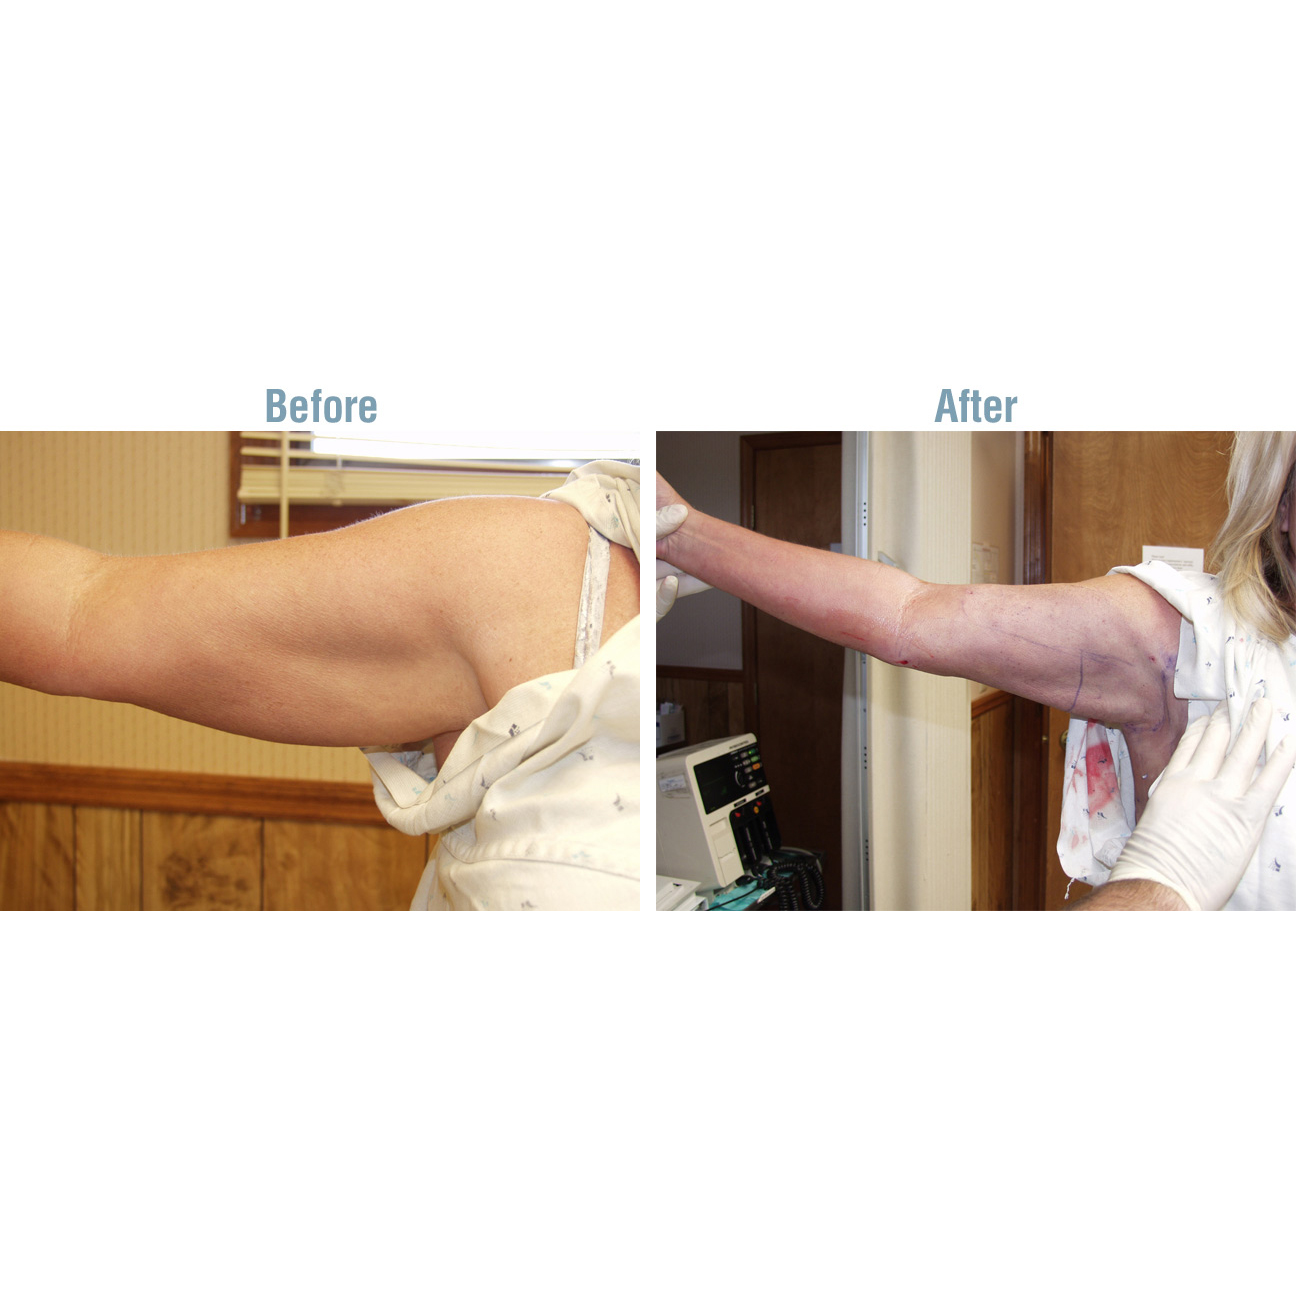 Laser Lipo Plus Before and After - Arm